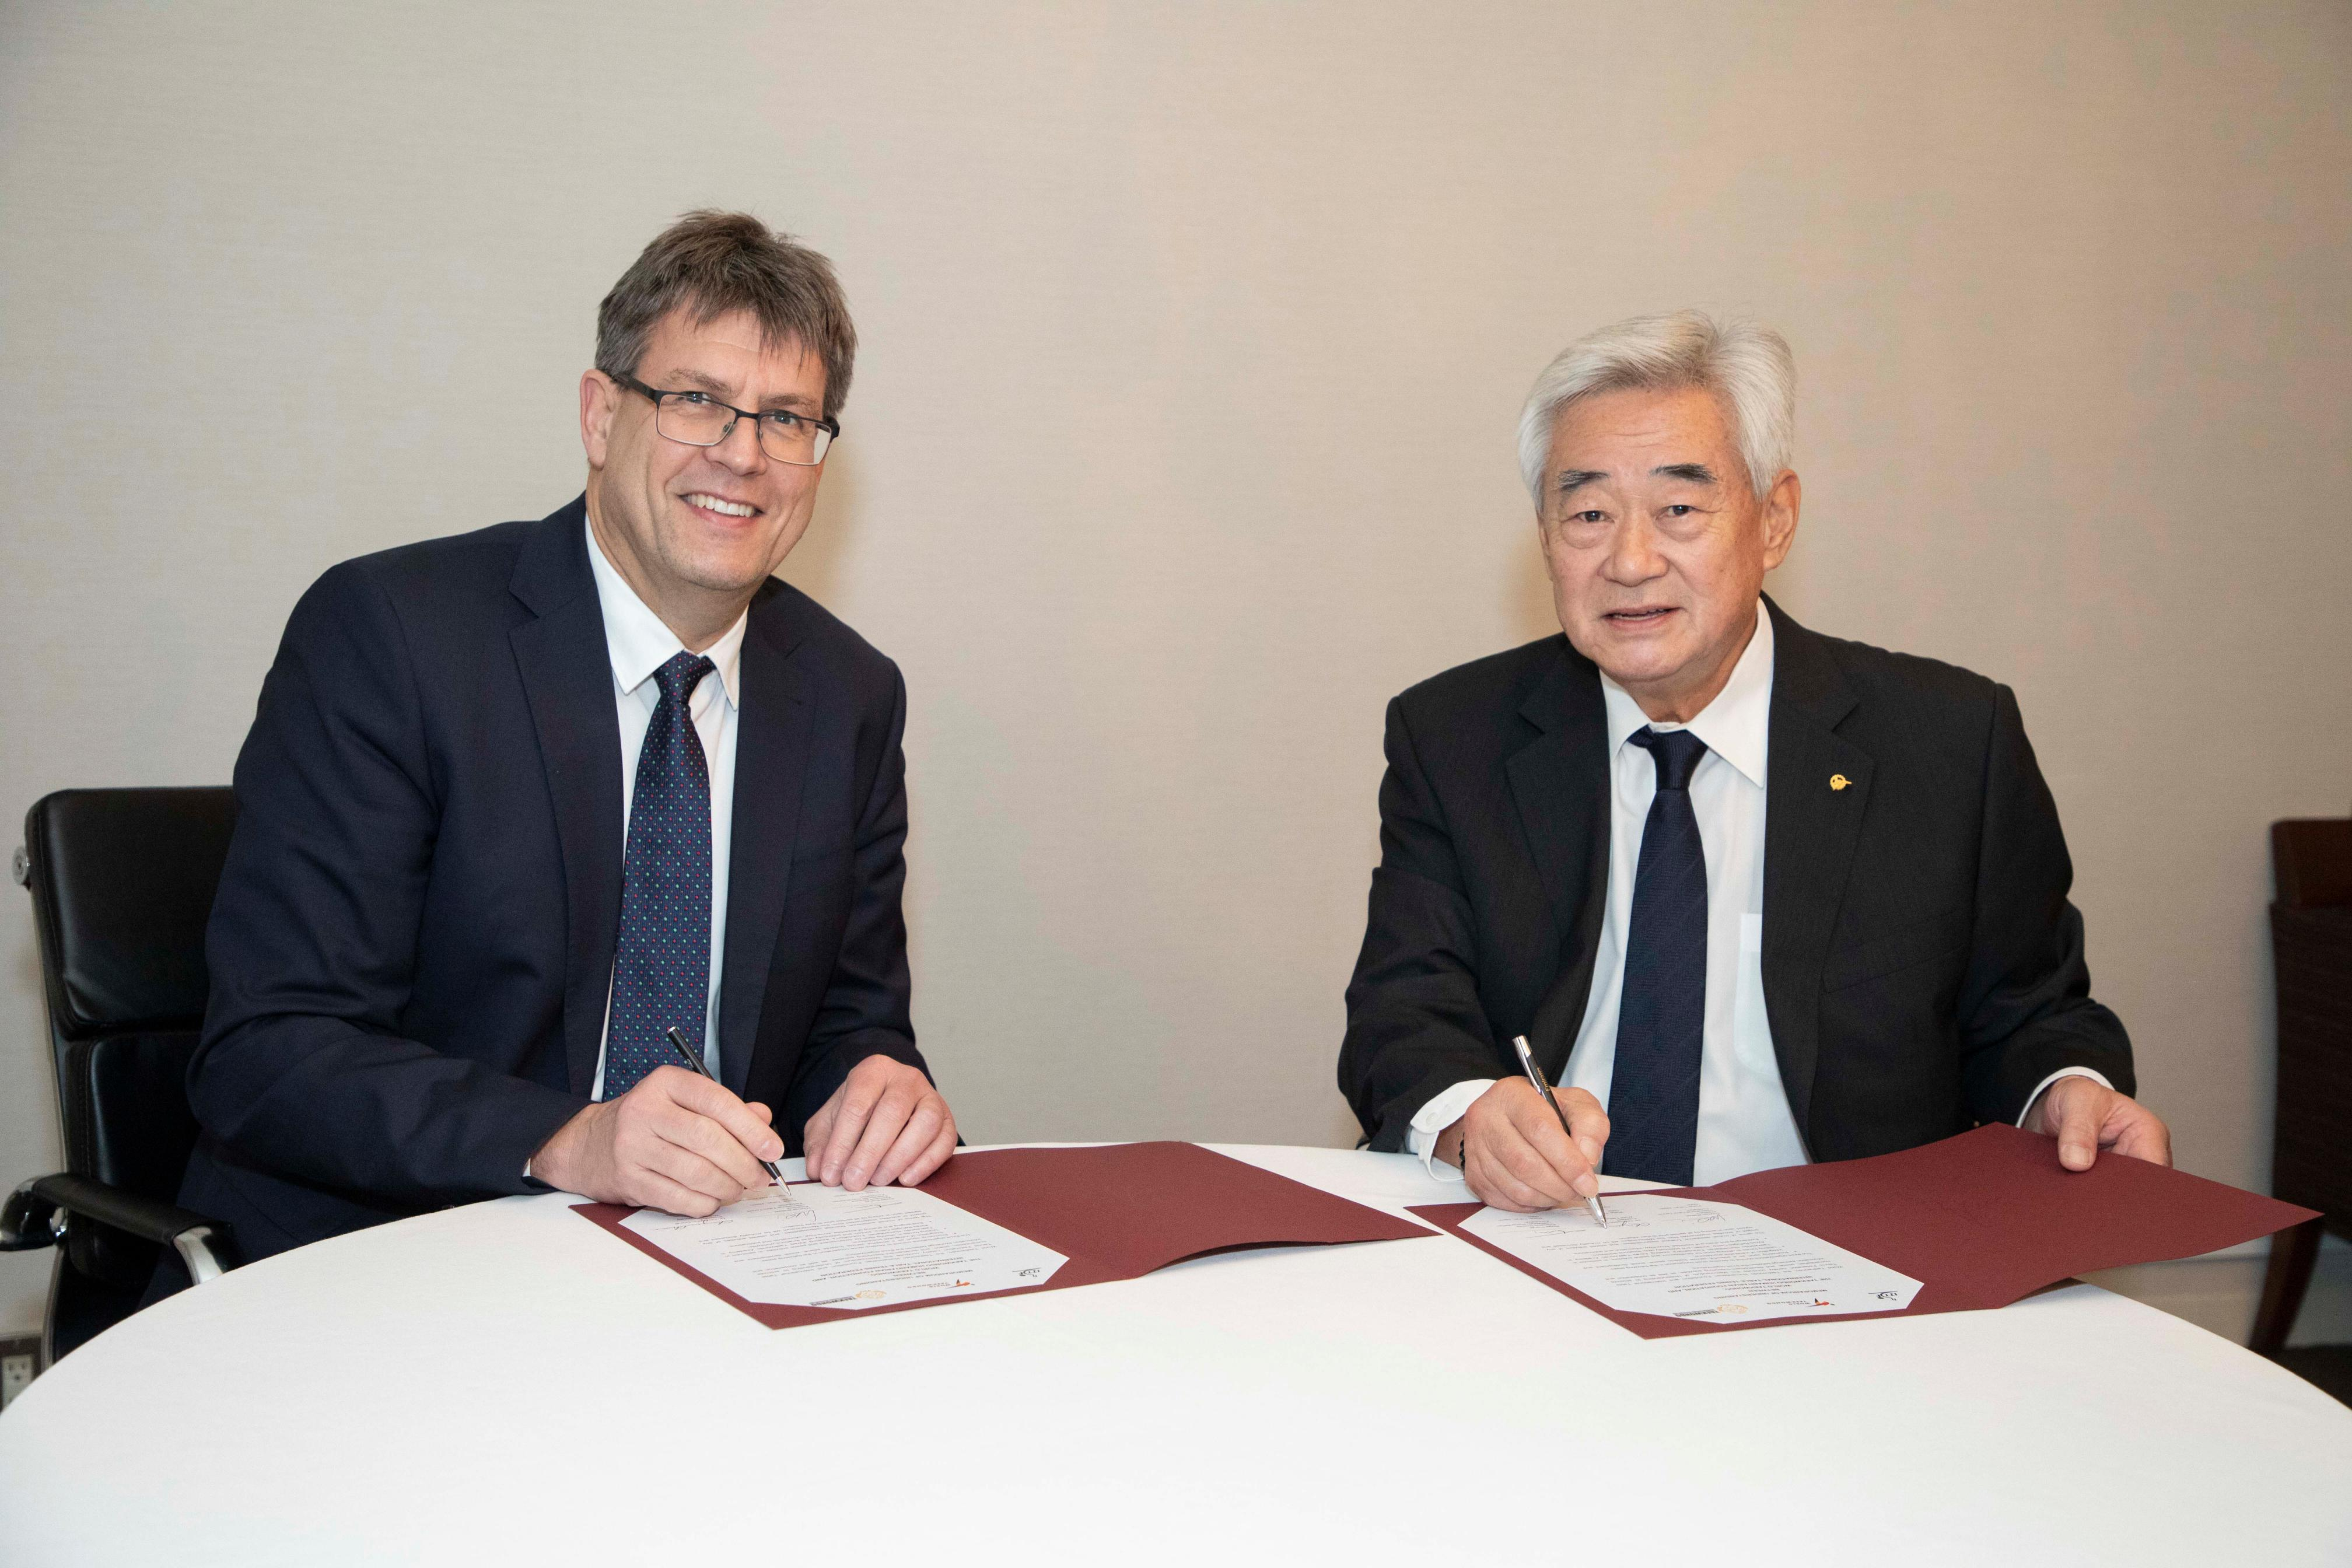 2018.11.28_ ITTF President Thomas Weikert (left), and WT President Chungwon Choue (right) signing the WT-ITTF MOU